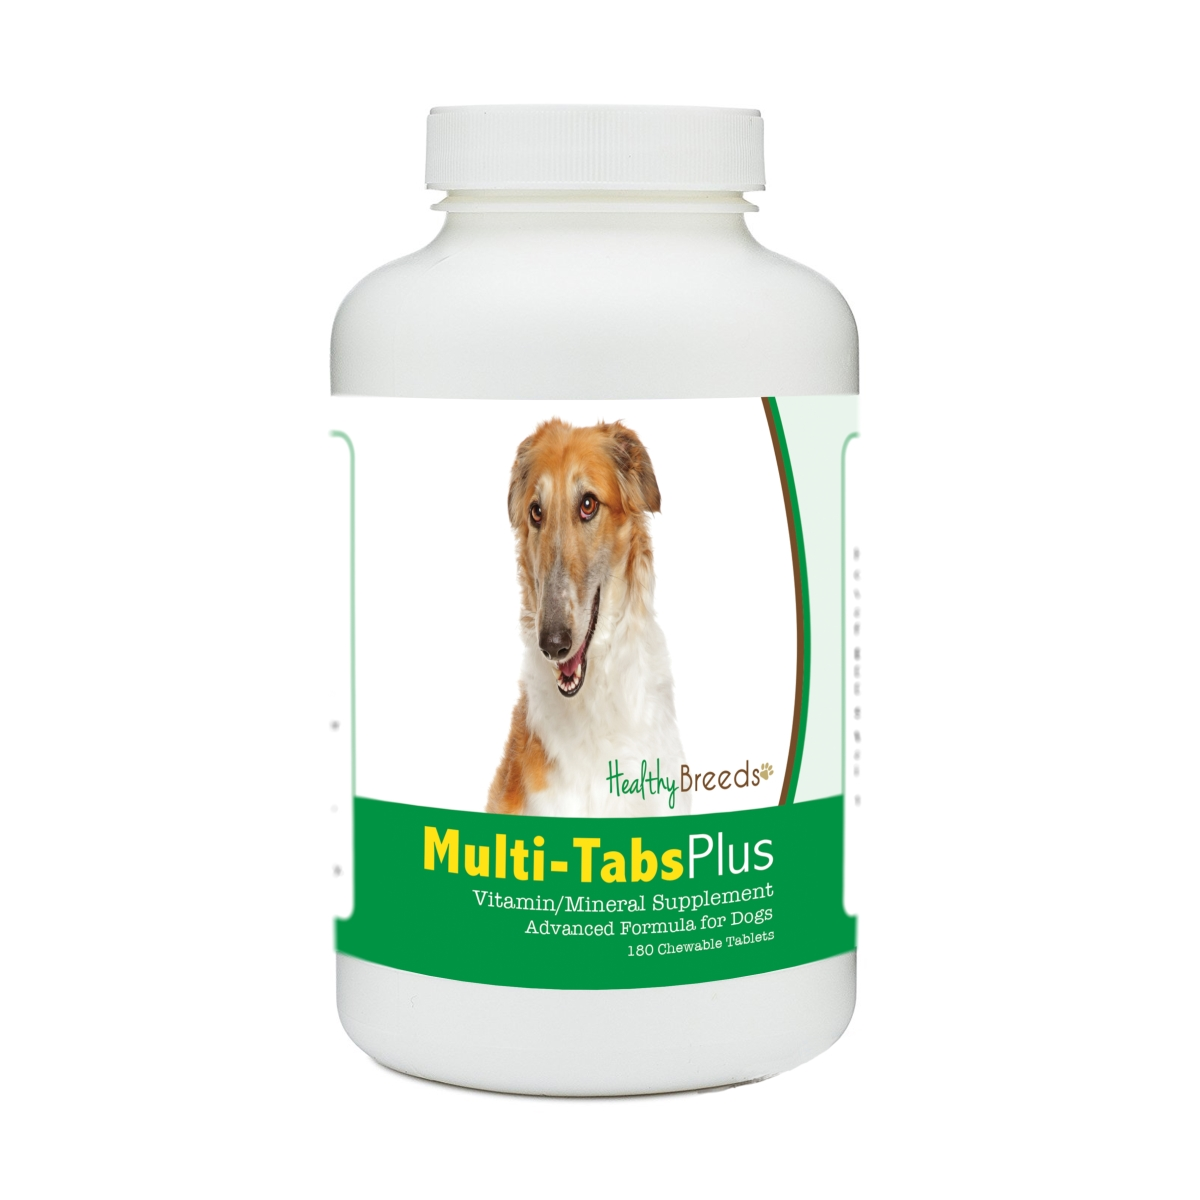 Healthy Breeds 840235176916 Borzois Multi-Tabs Plus Chewable Tablets - 180 Count